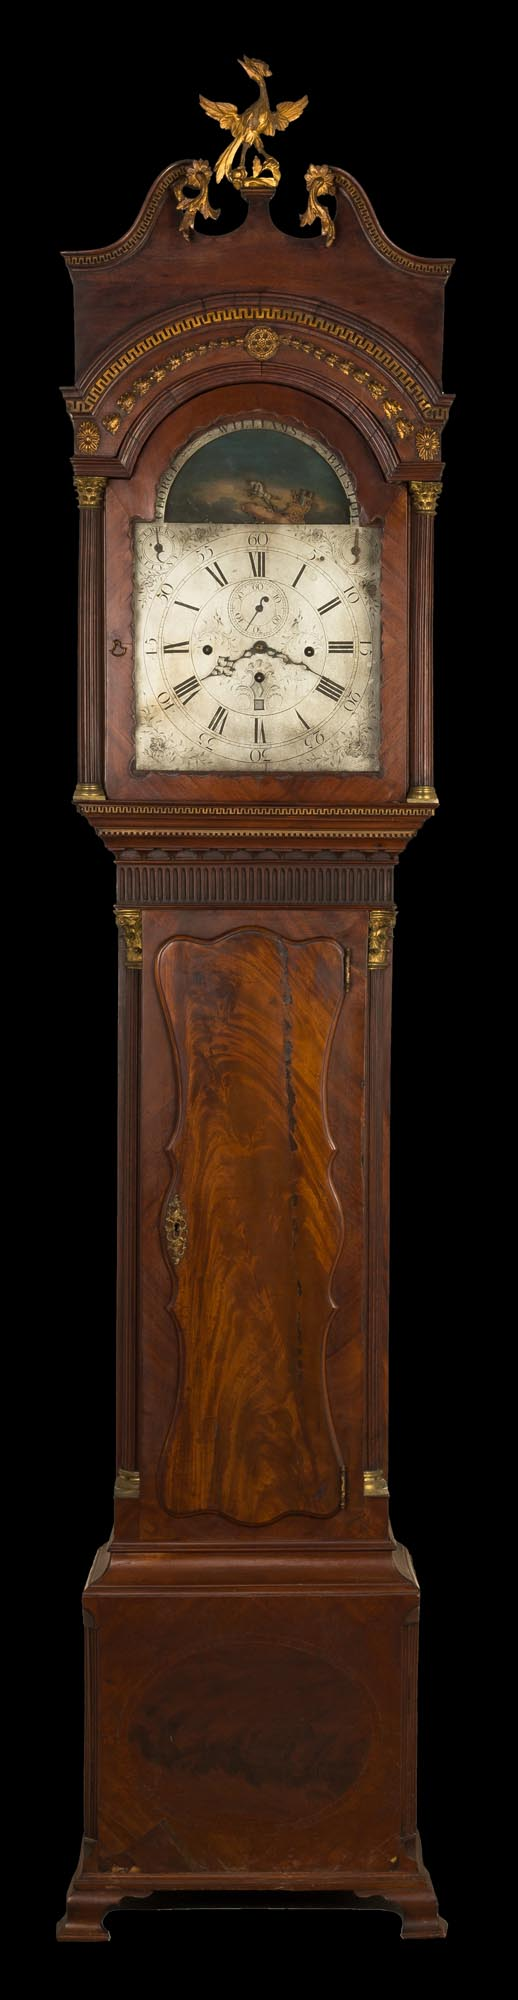 Lot 84 - Bristol English Musical Tall Case Clock. Chariot rocking movement, silver engraved dial, with carved